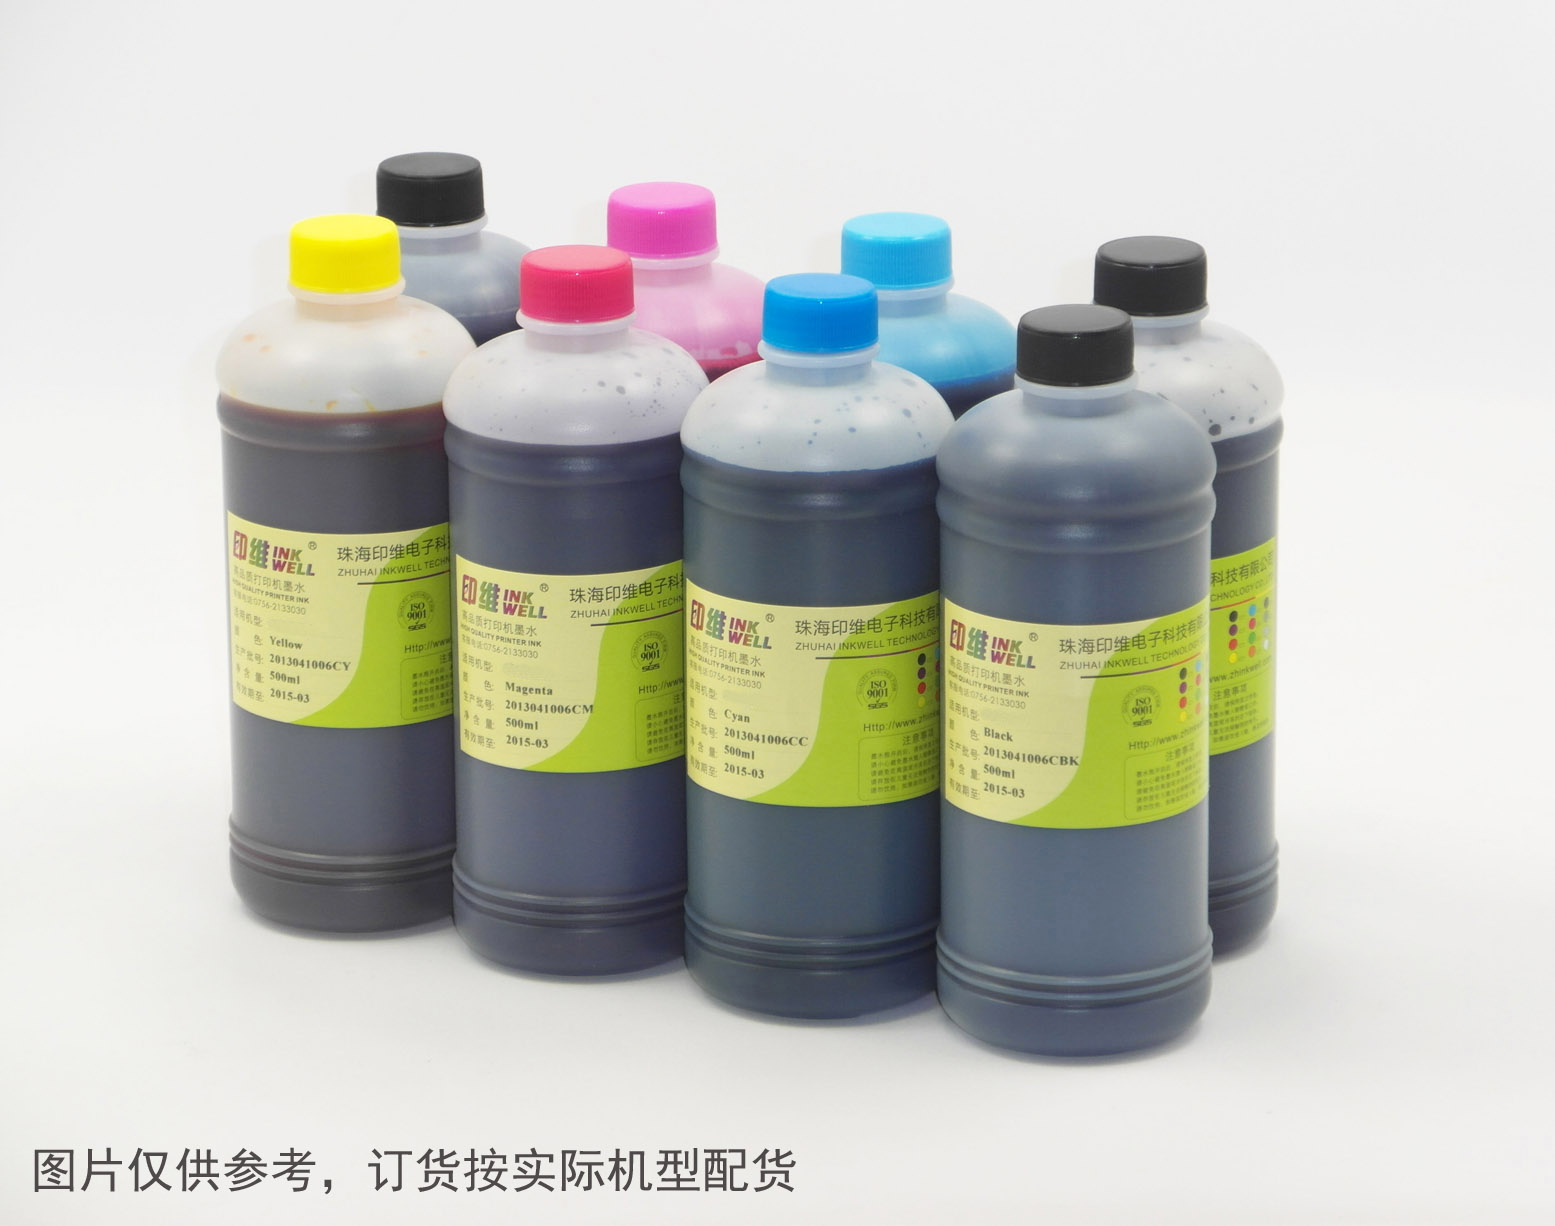 Indian peacekeeping hp hp d730 f735 k109a k209a ciss ink pigment waterproof ink 500 ml